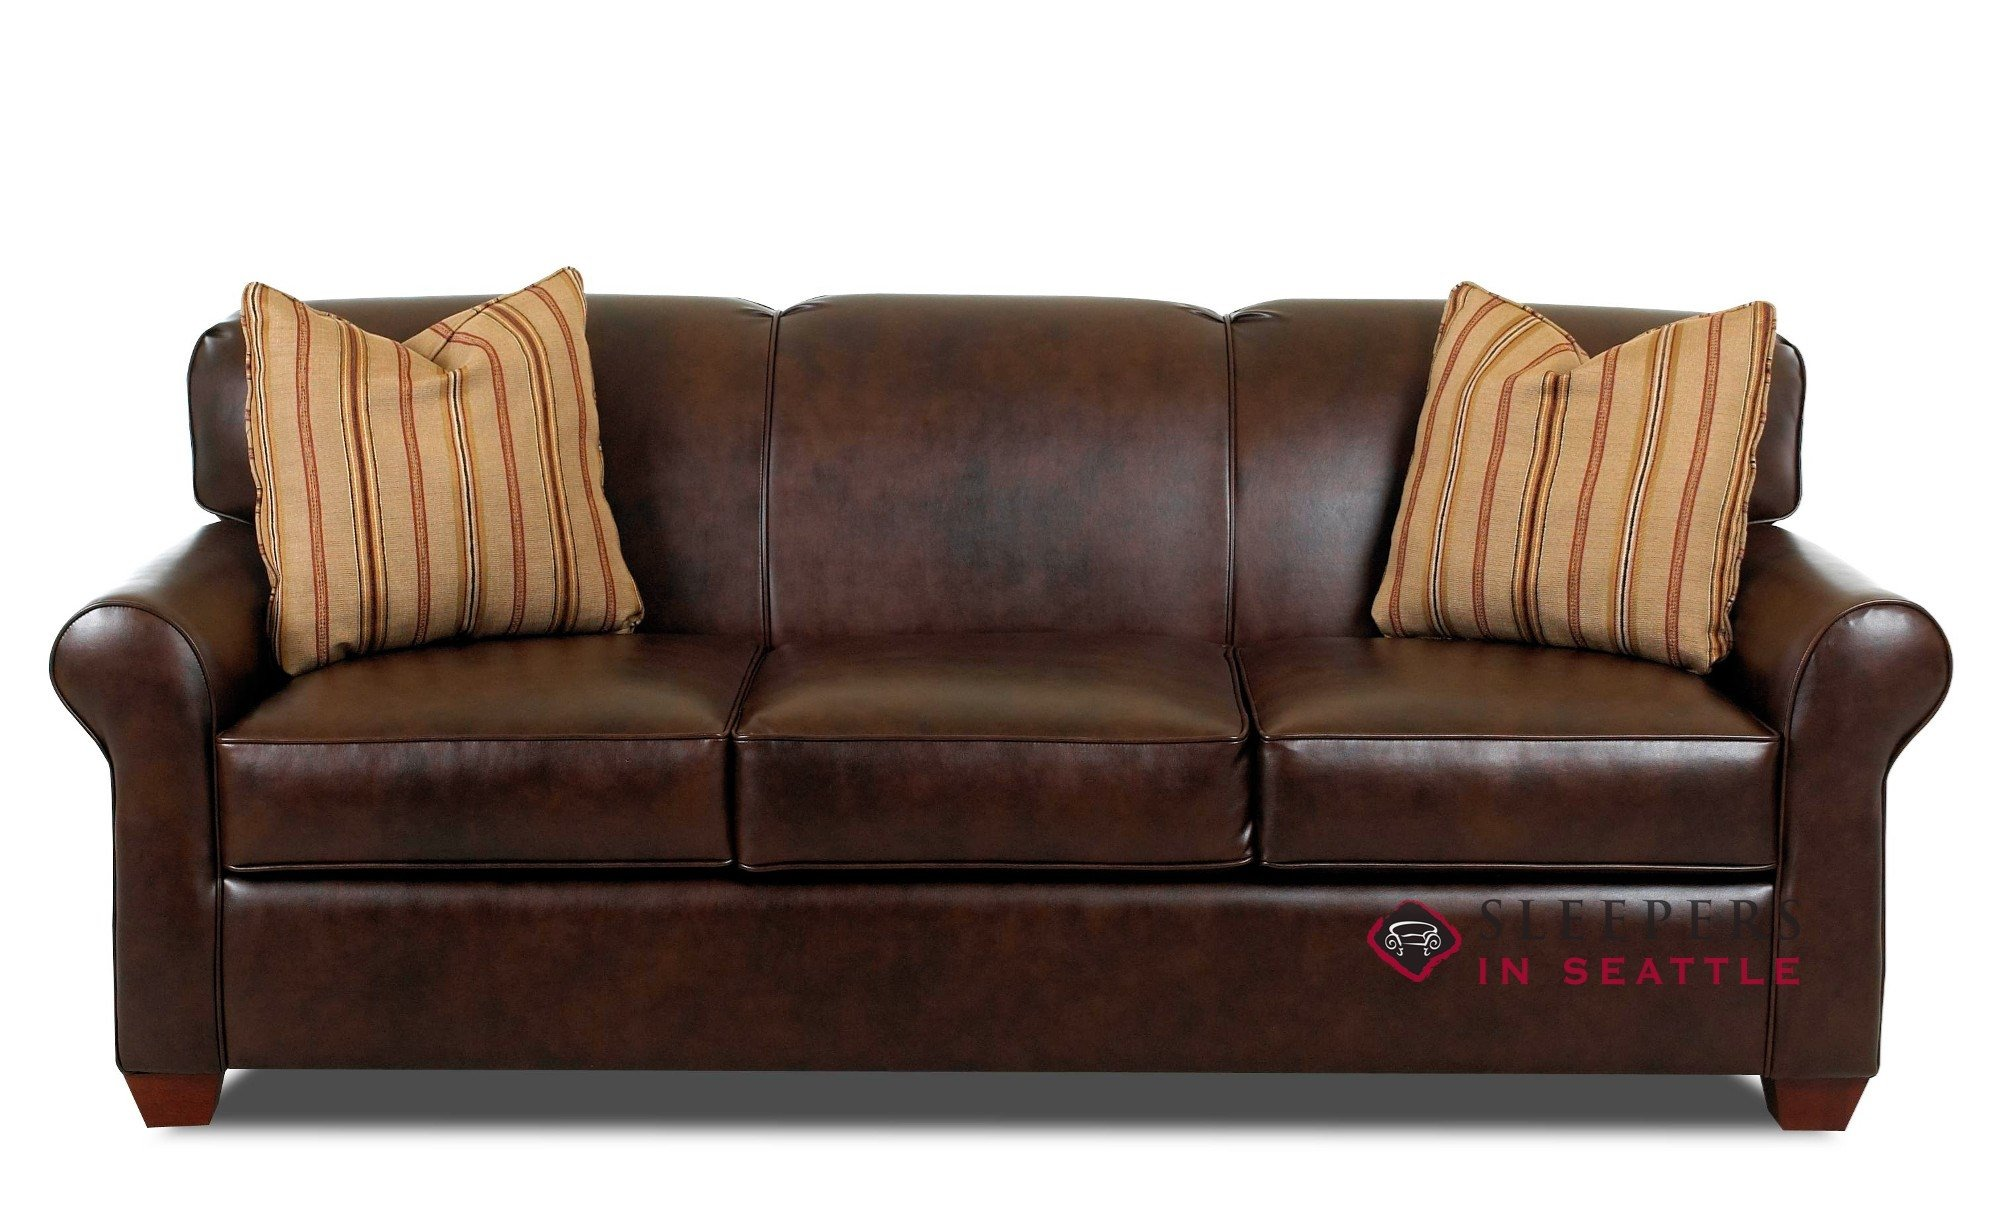 customize and personalize calgary queen leather sofasavvy